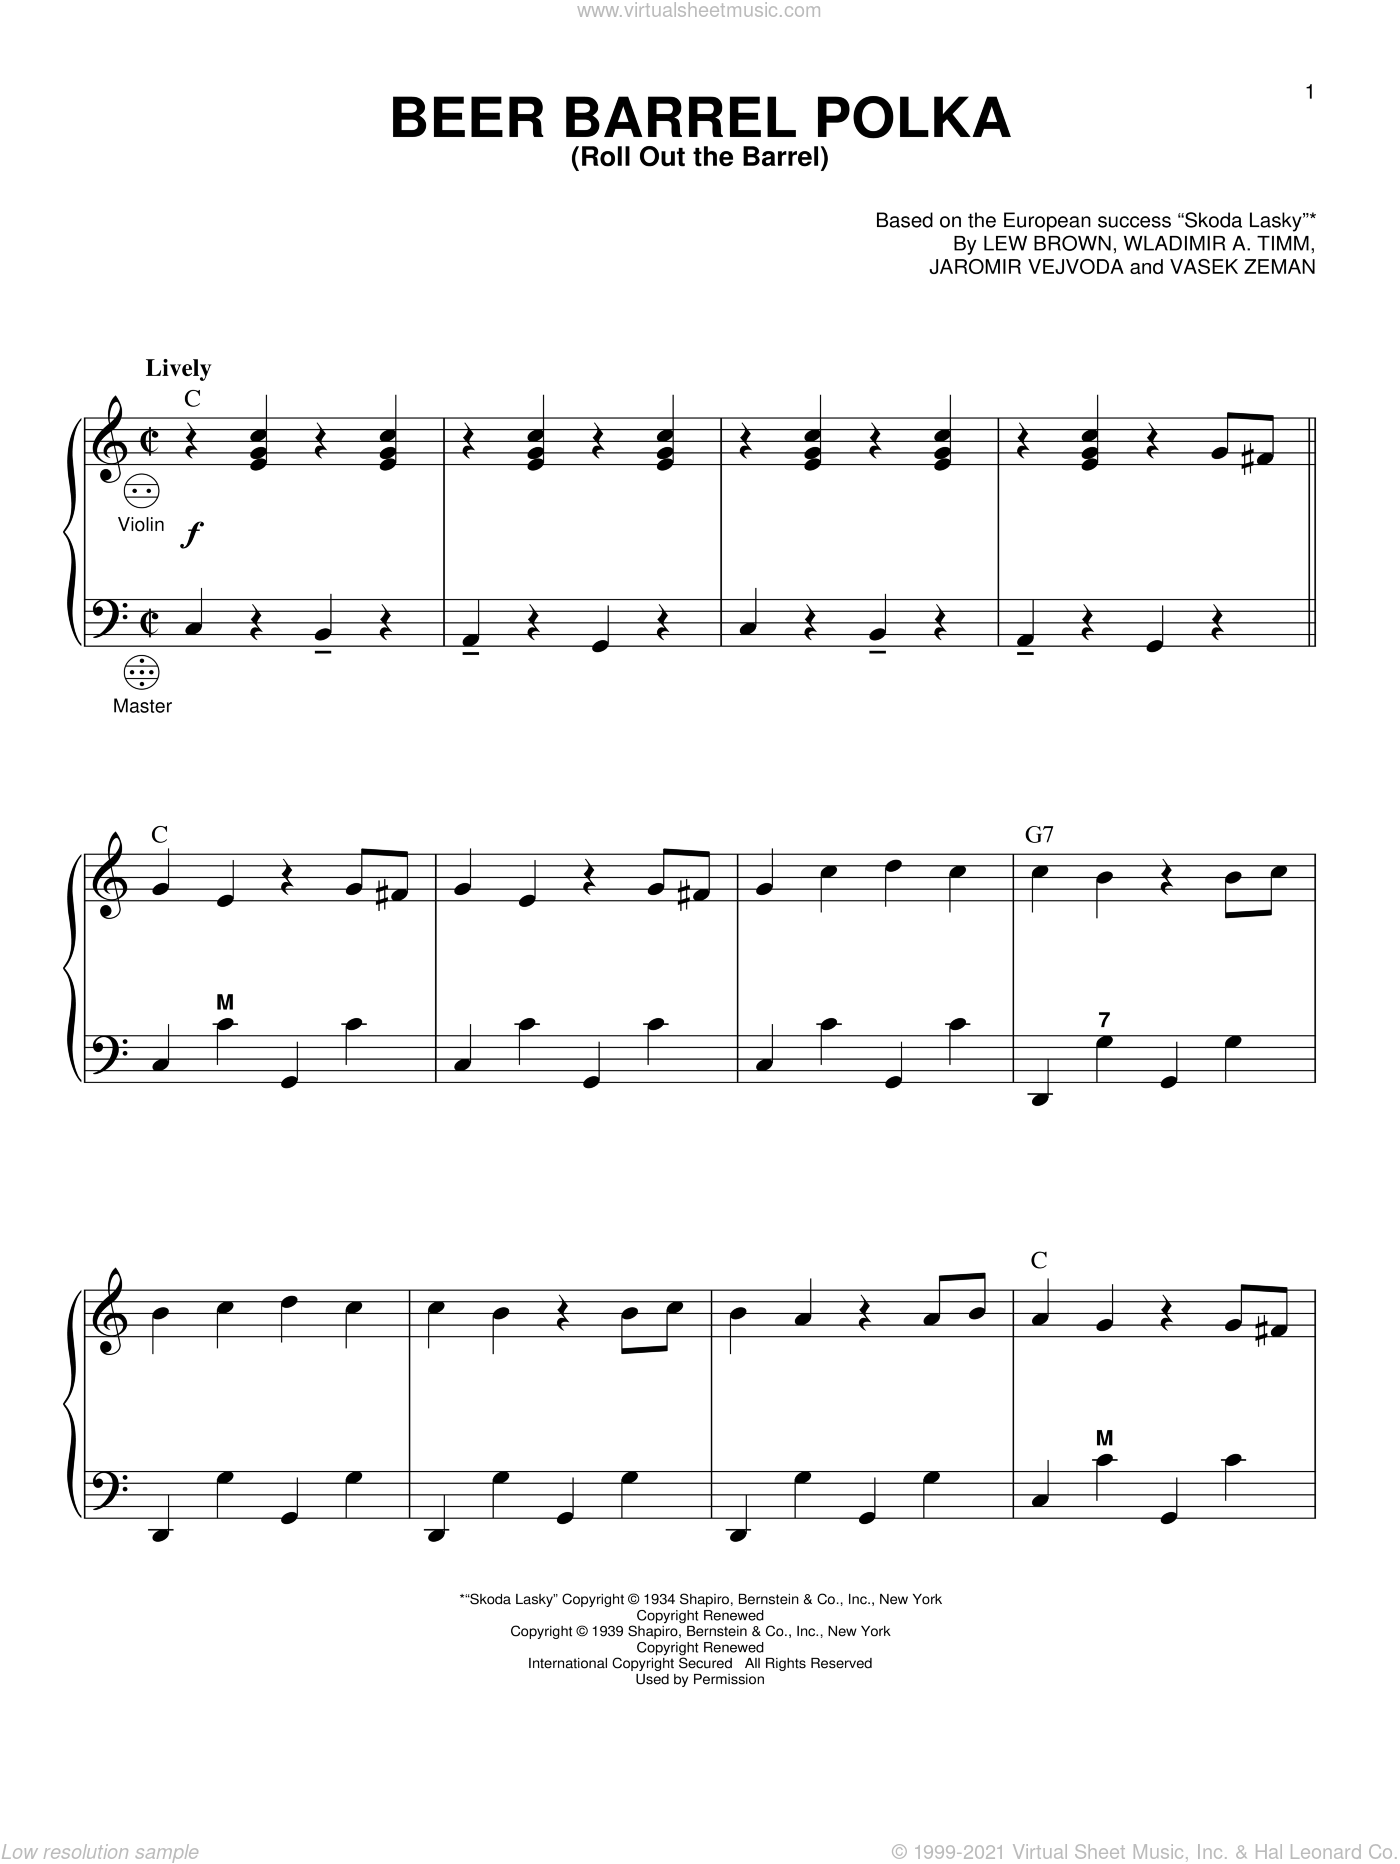 Beer Barrel Polka (Roll Out The Barrel) sheet music for accordion by Wladimir A. Timm